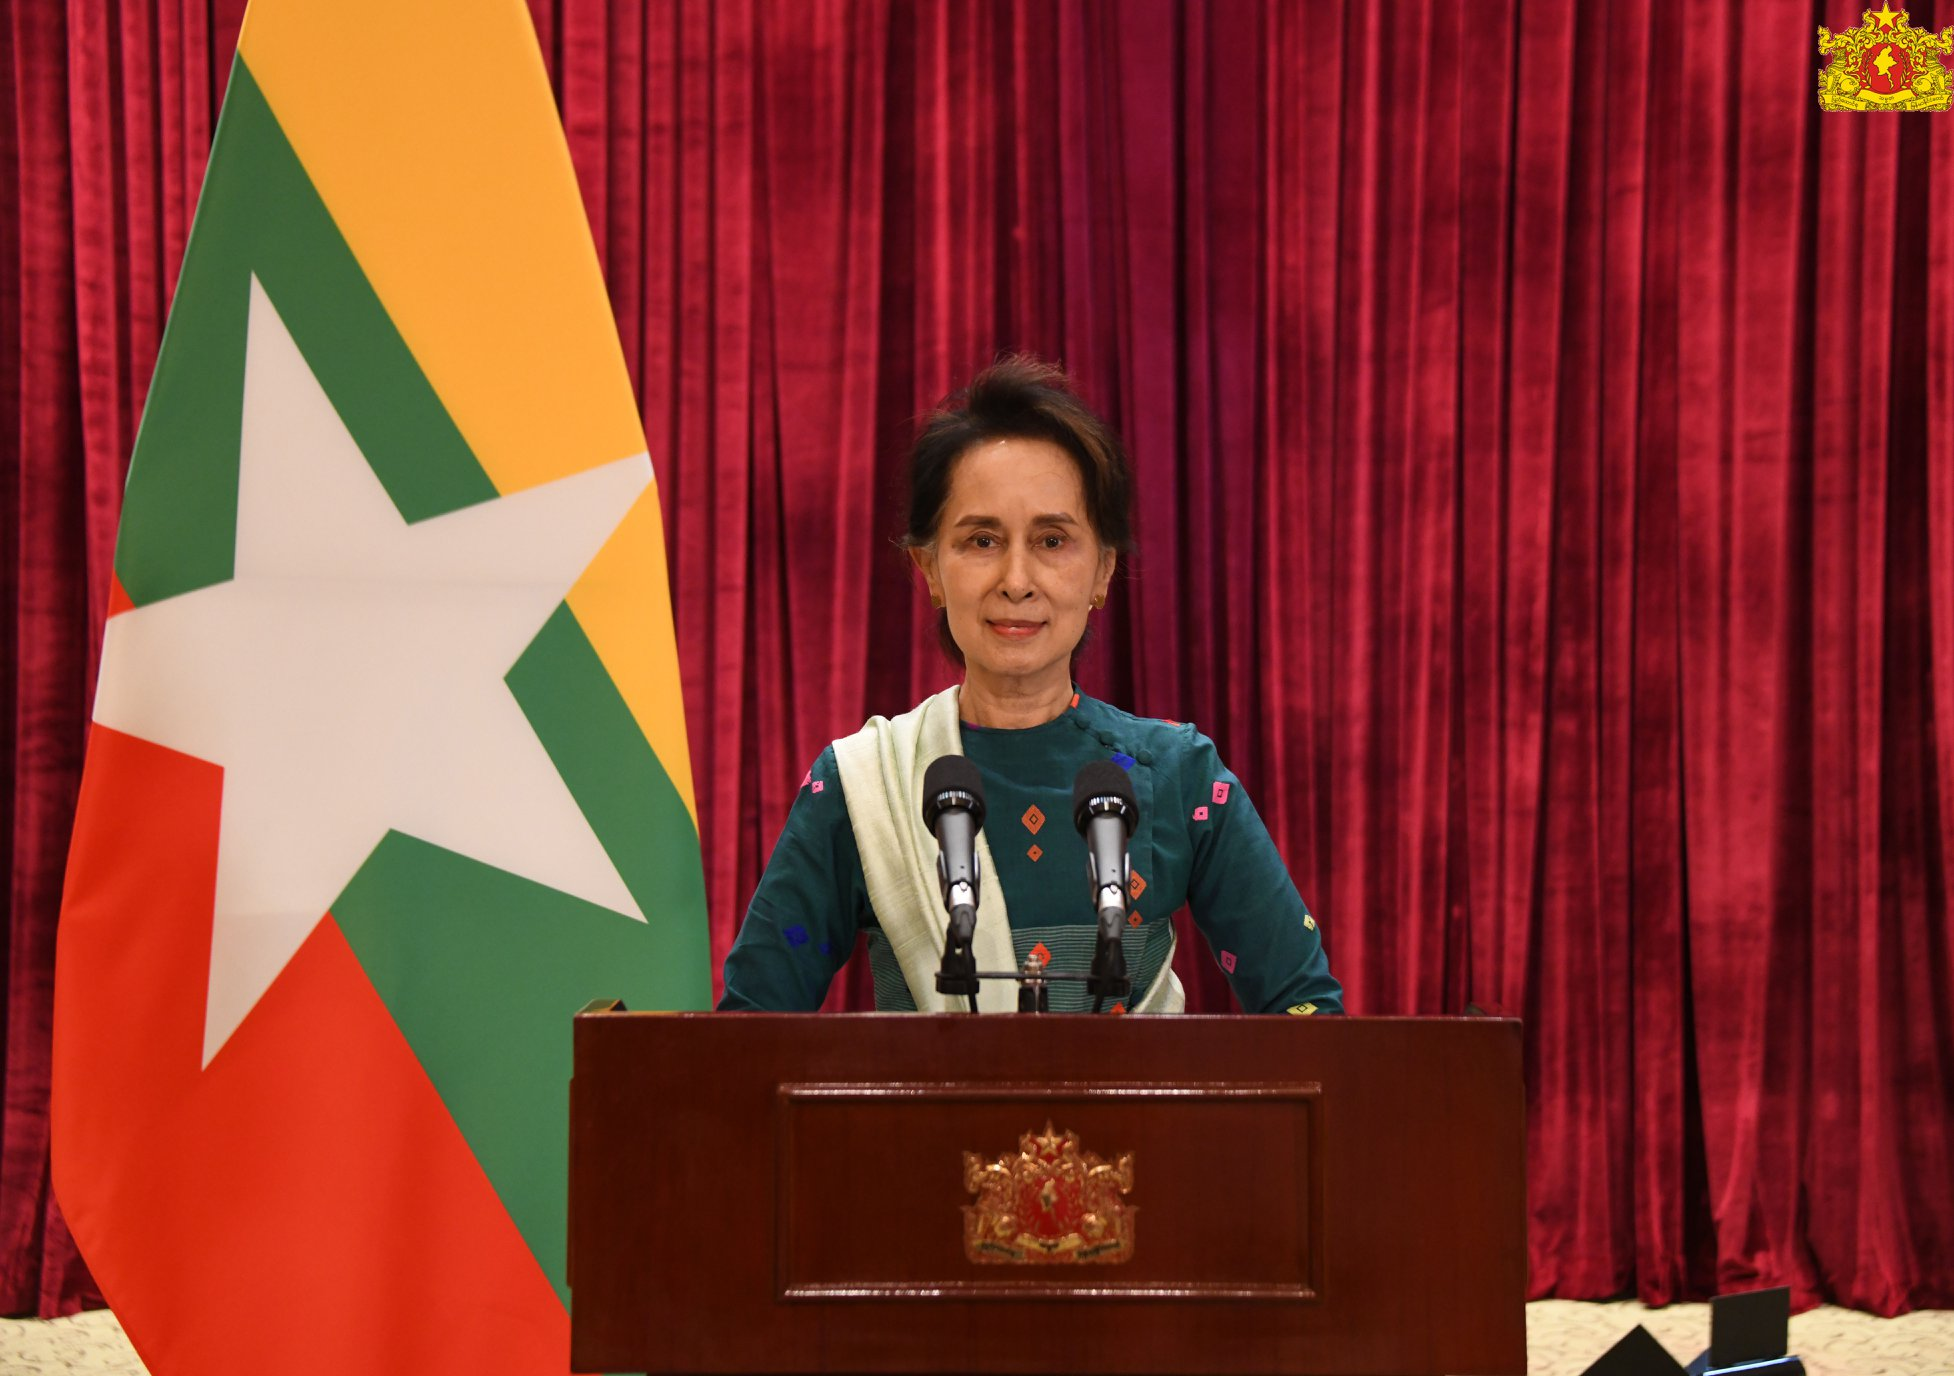 State Counsellor in good health, meetings limited | The Myanmar Times